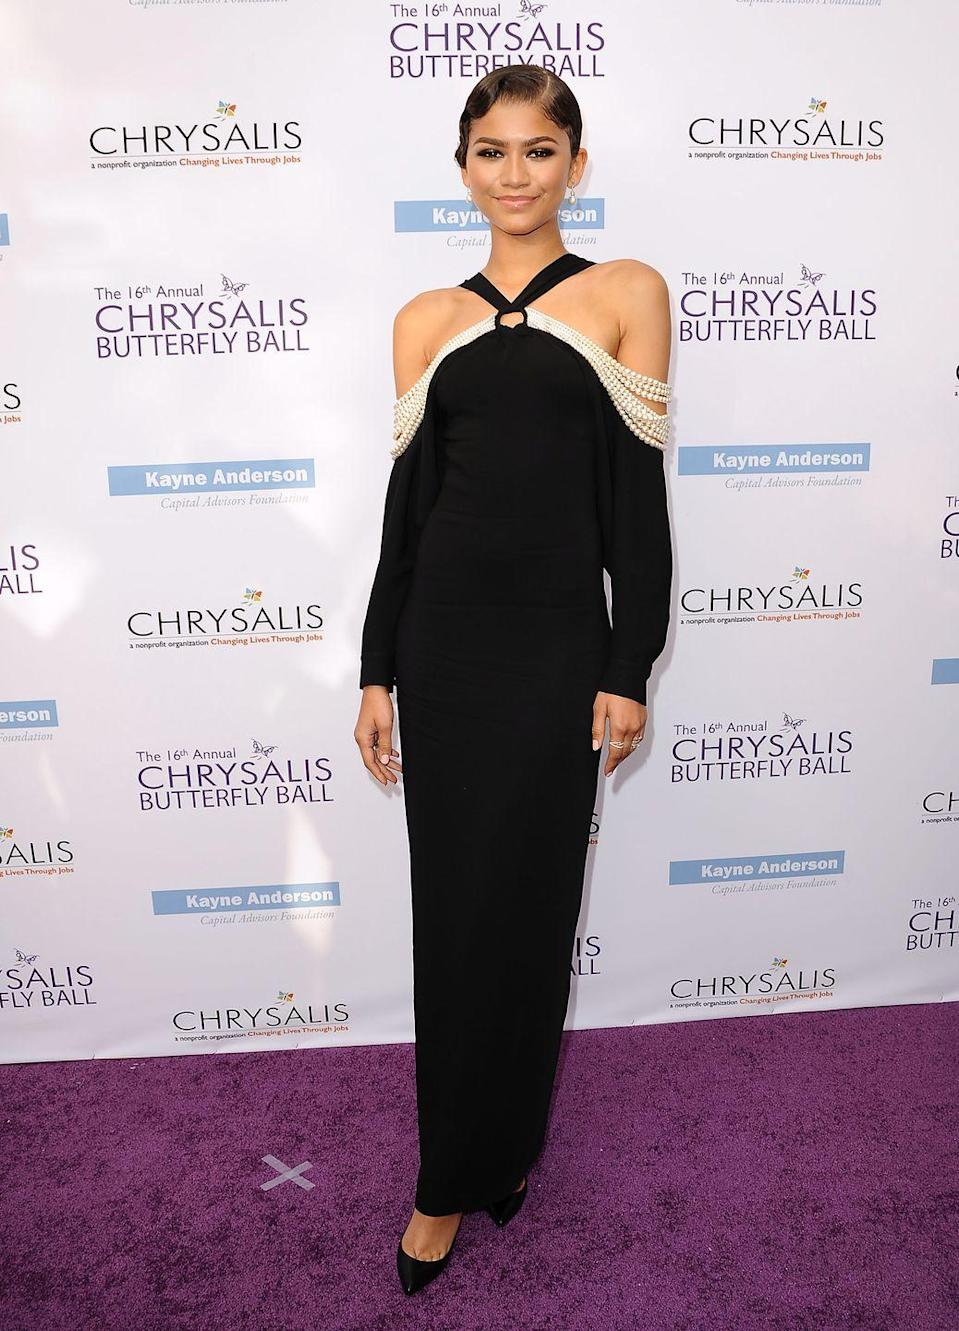 """<p>Zendaya <span class=""""redactor-invisible-space"""">wore Mario Dice to attend the 16th Annual Chrysalis Butterfly Ball.</span></p>"""